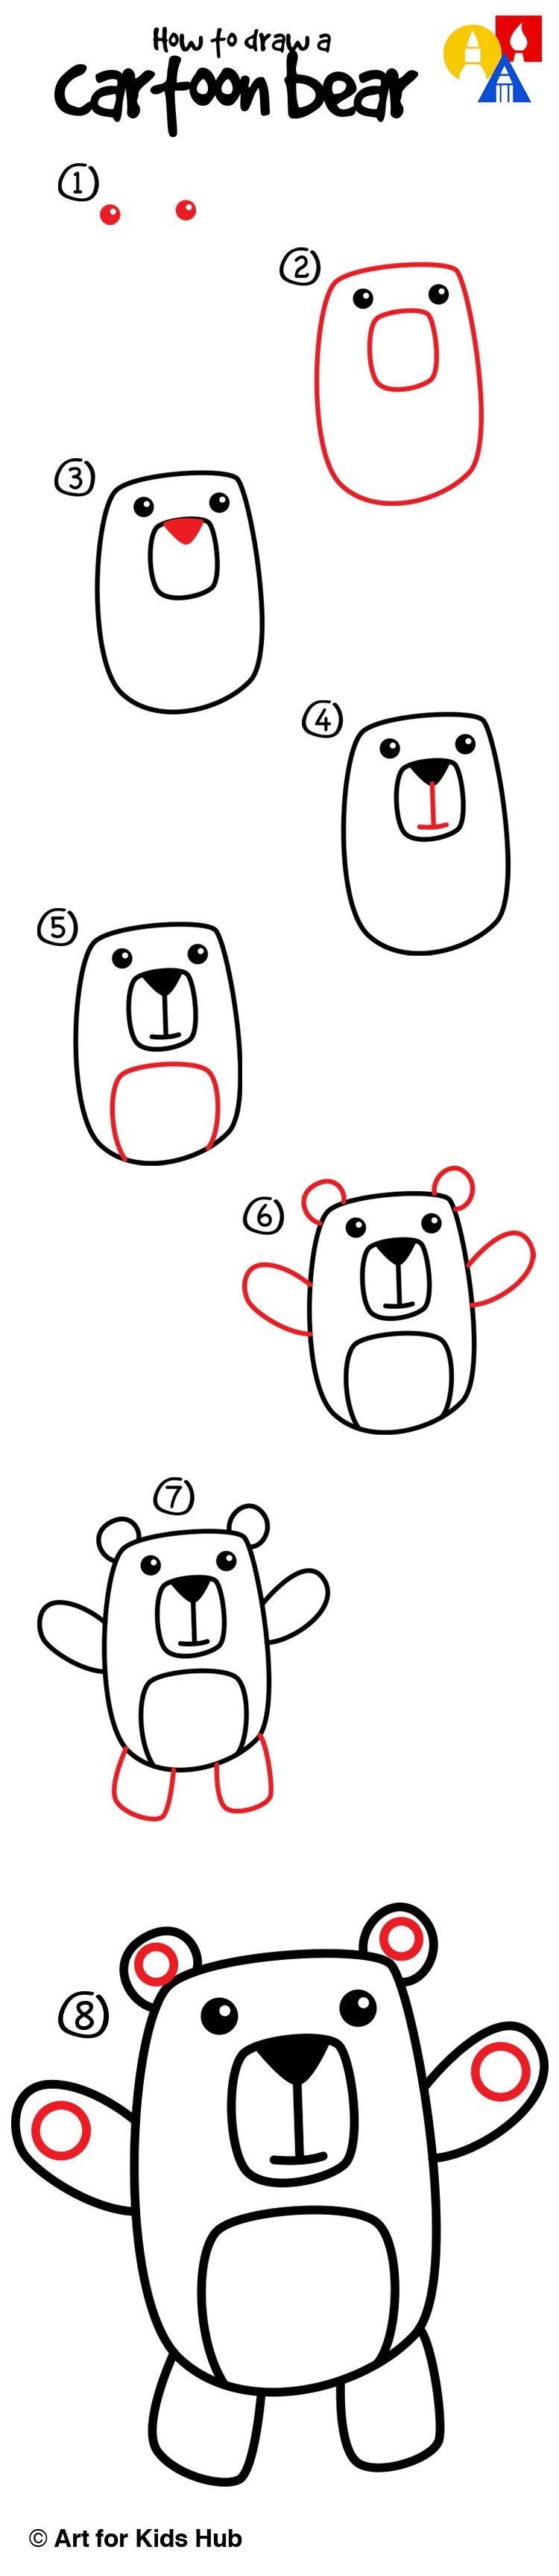 Uncategorized How To Draw Kids Stuff how to draw a bird step by easy with pictures swallows cartoon bear for young artists art kids hub